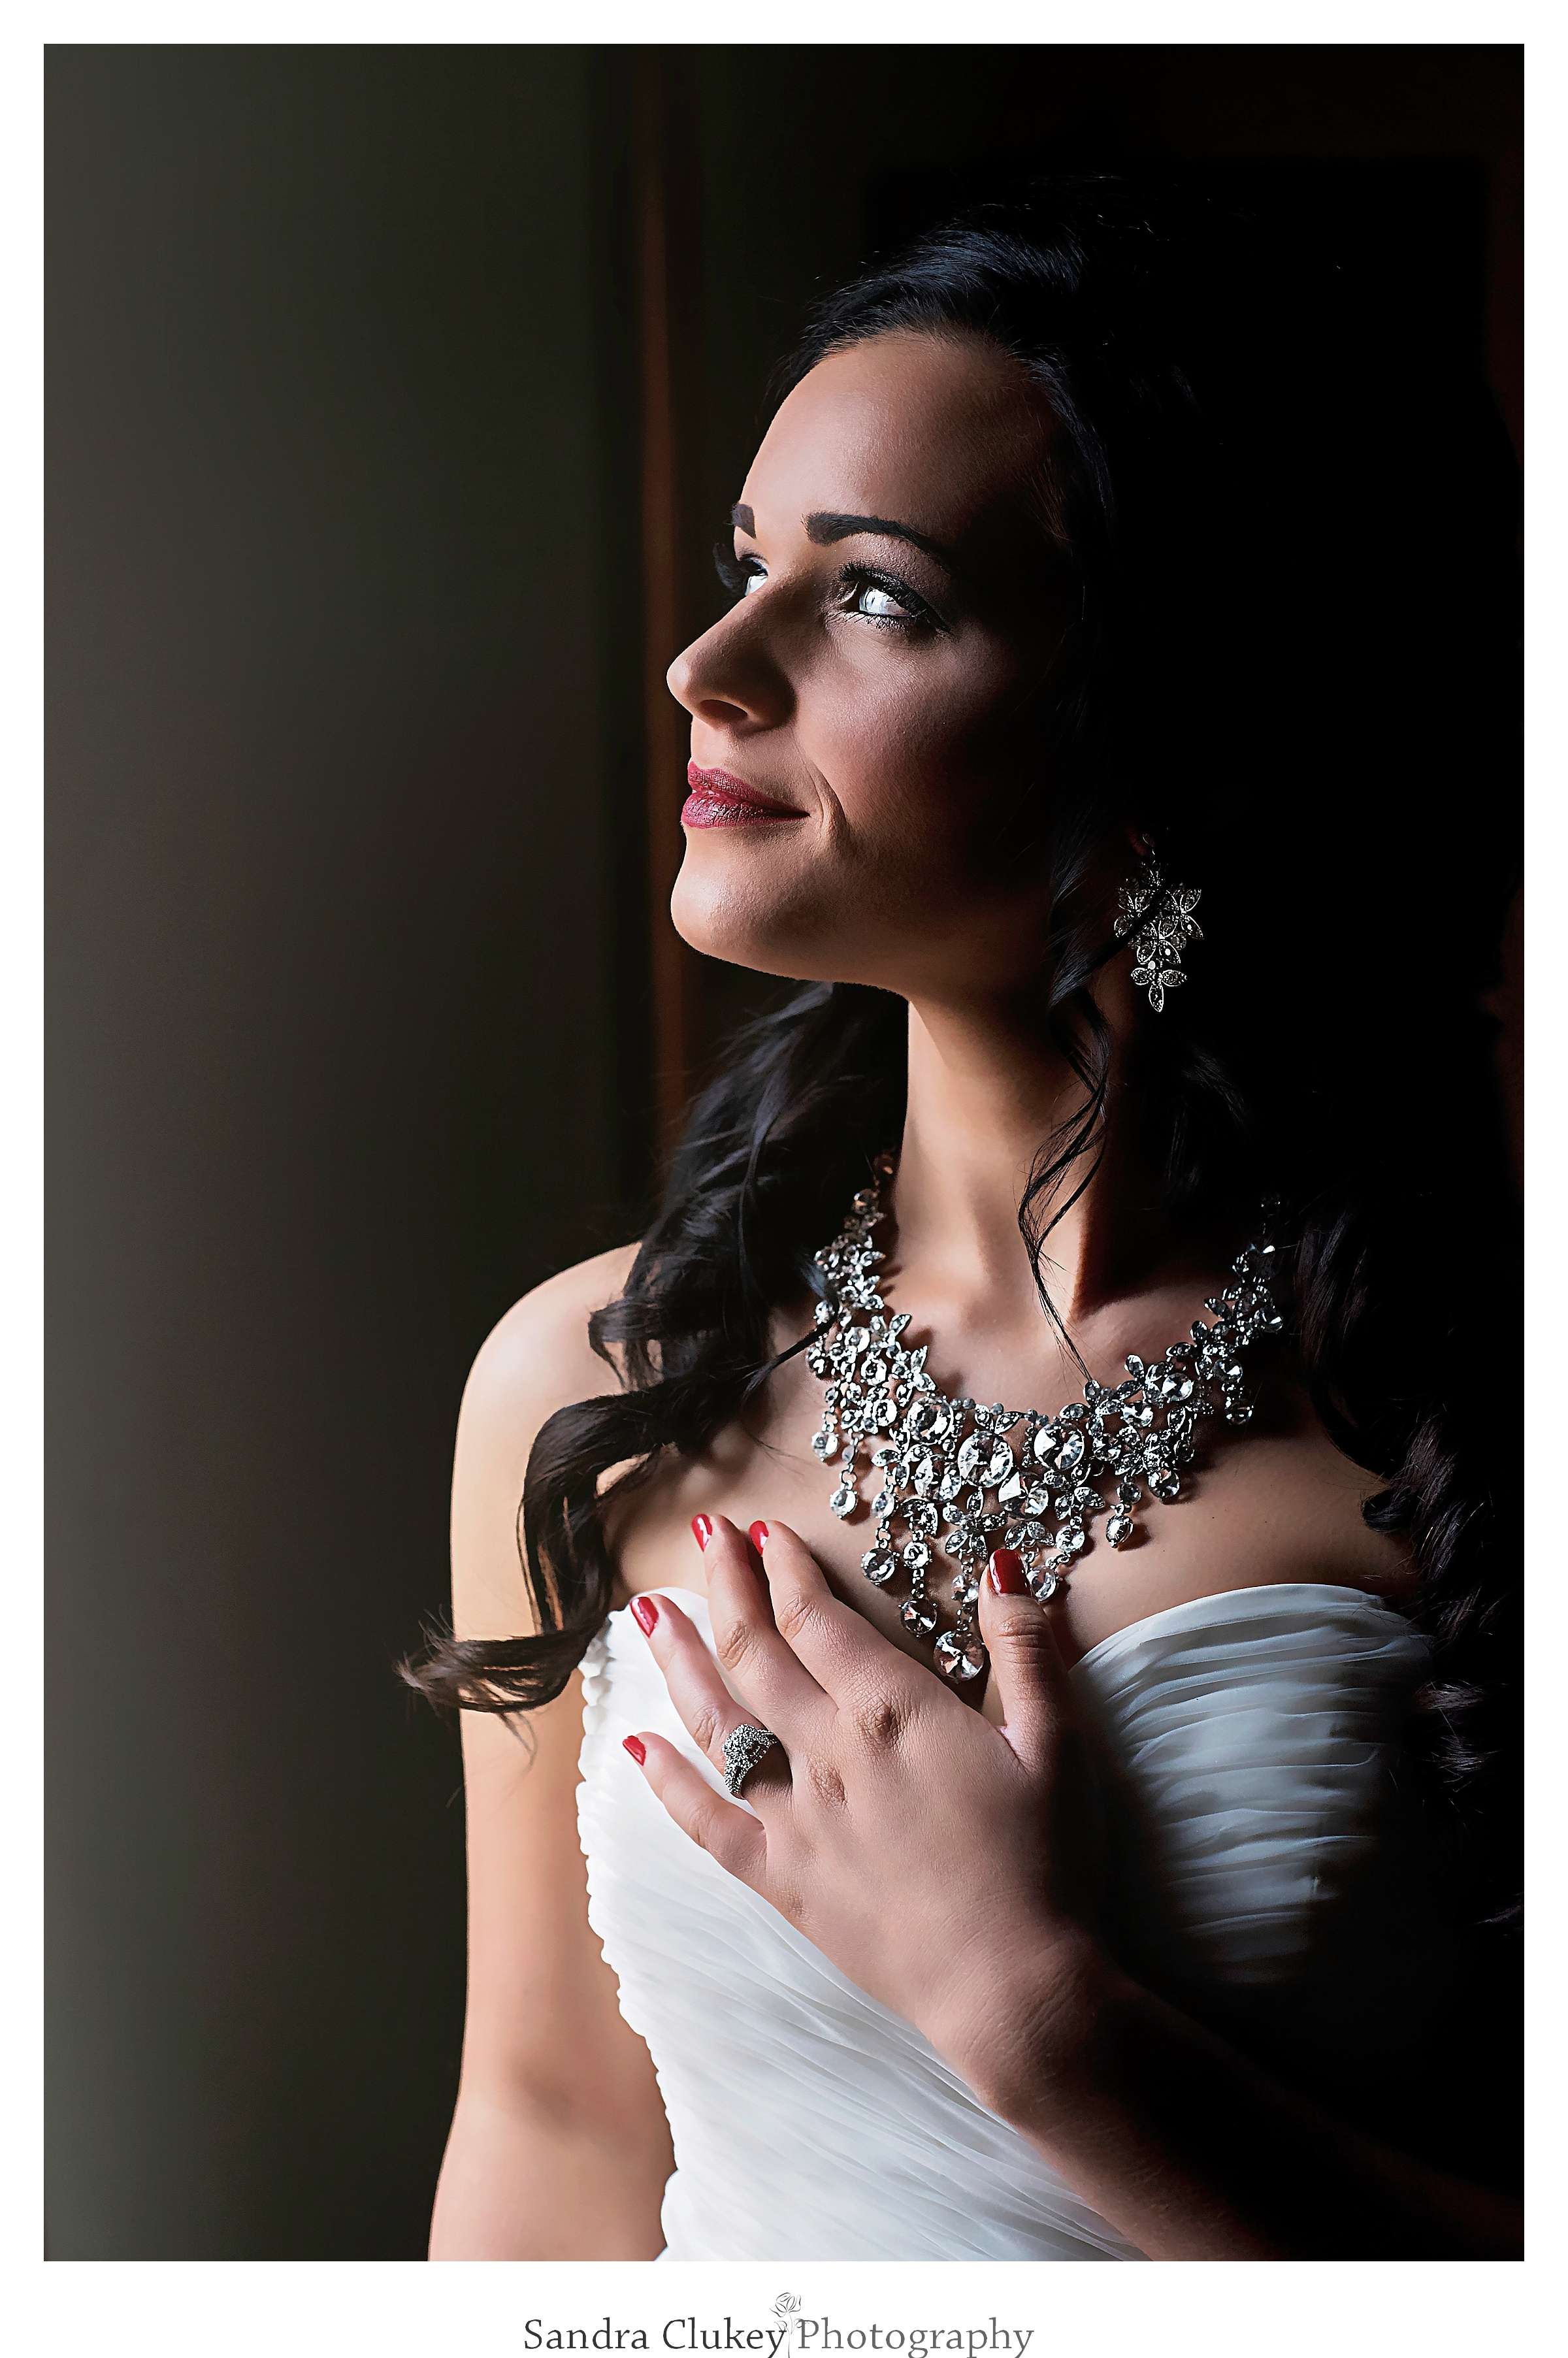 Stunning bride in deep reflection at Lee University Chapel, Cleveland TN